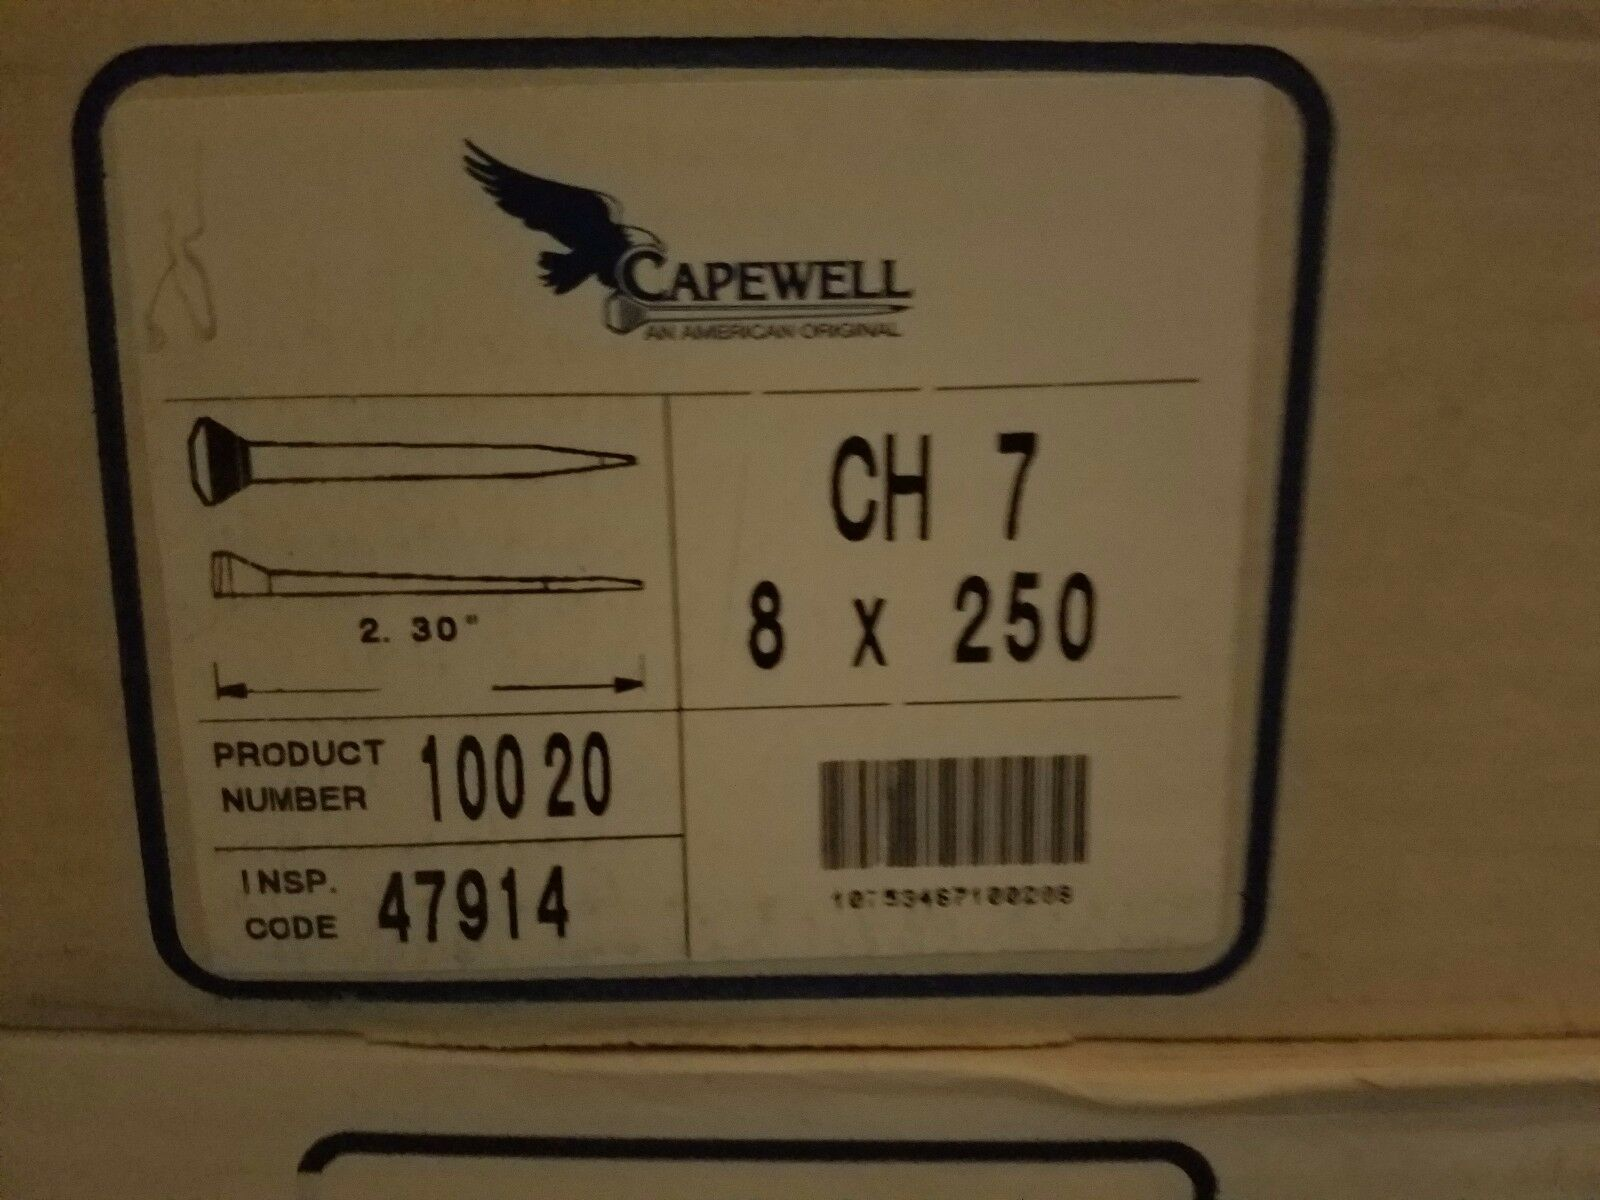 Capewell City Head 7 Horseshoe Nails 1 Case of 8  Boxes 250 Pieces Farrier  new style